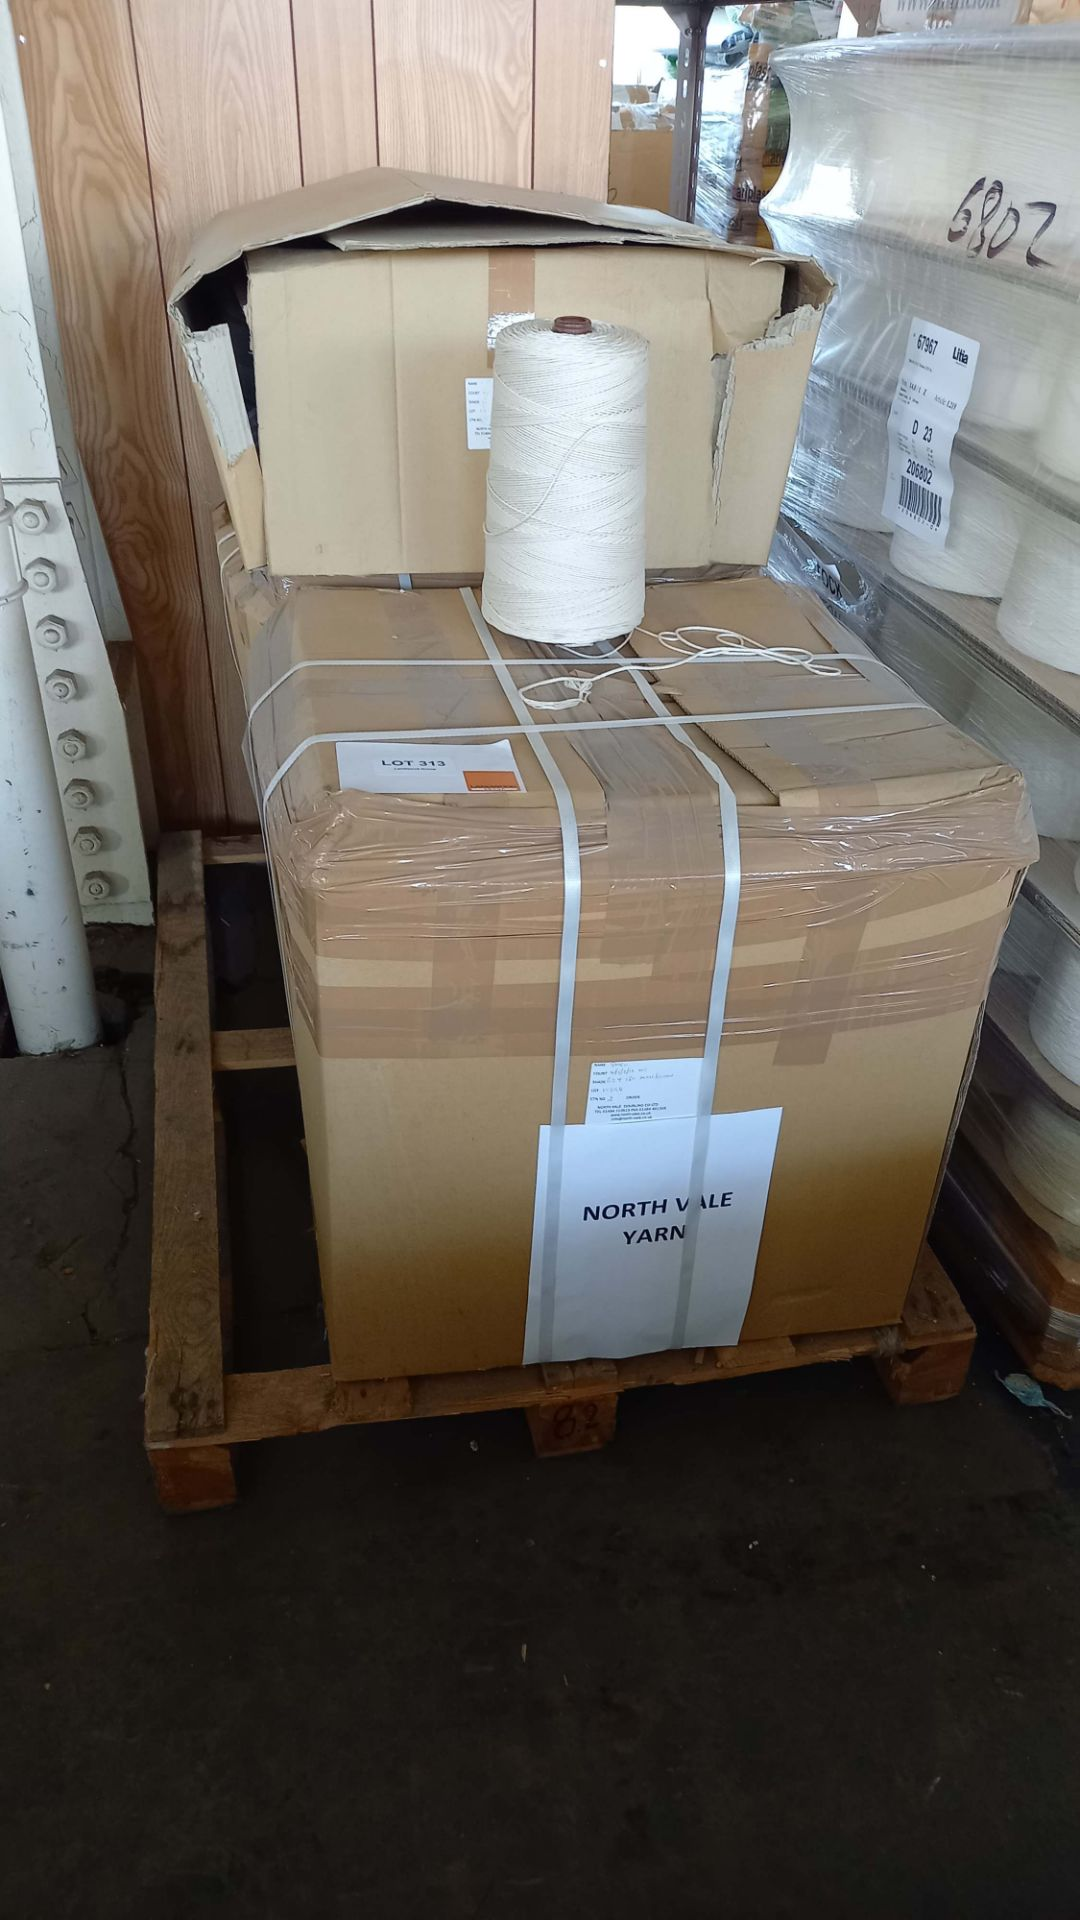 Pallet of 3 cartons of Mercerised Cotton Yarn 4/5/2/16 weight approx 140g